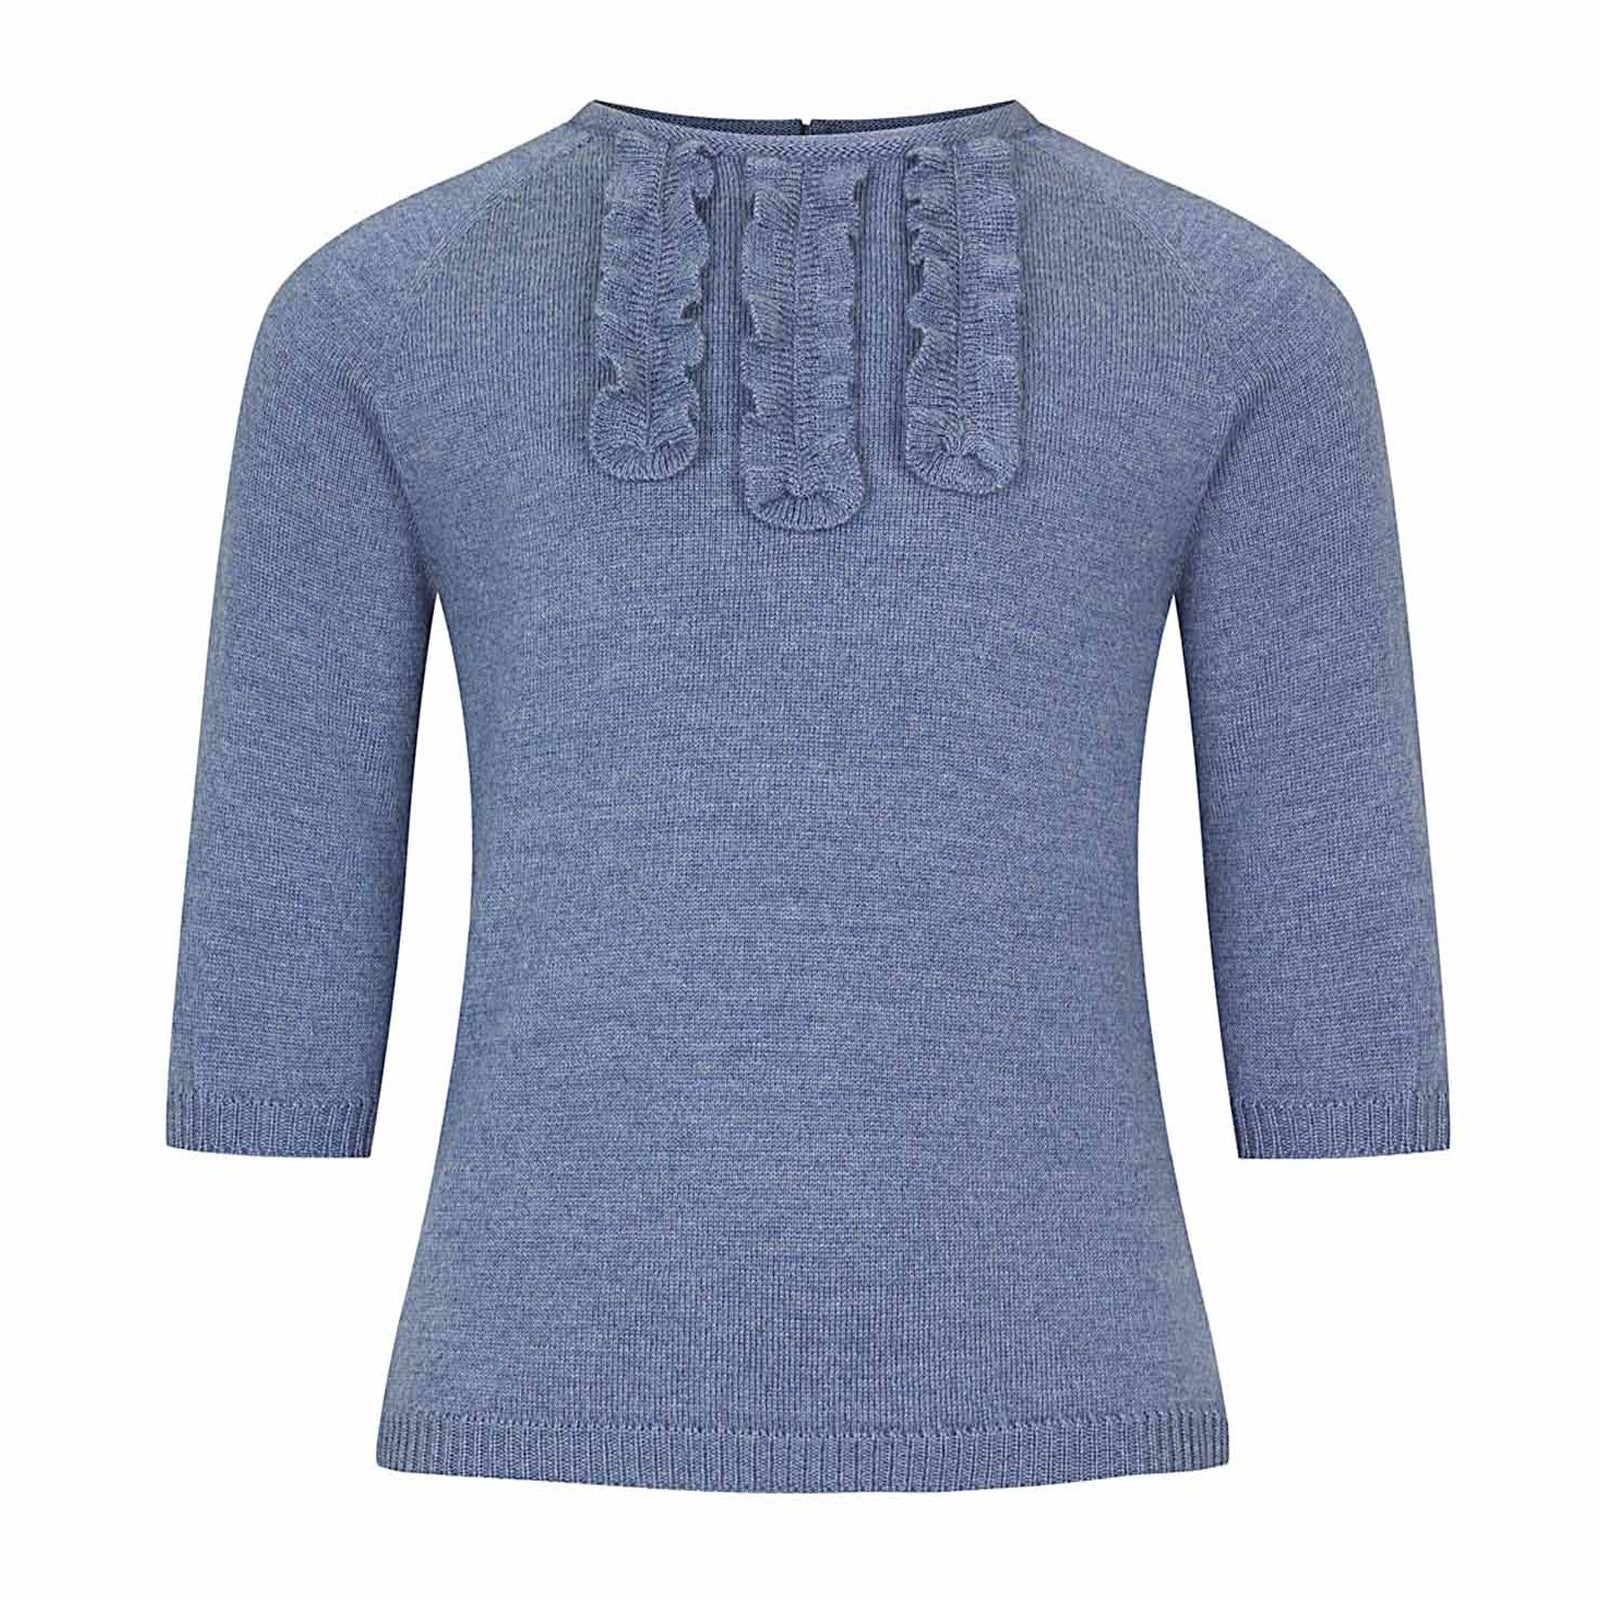 the gallery for gt jean jumpers for girls